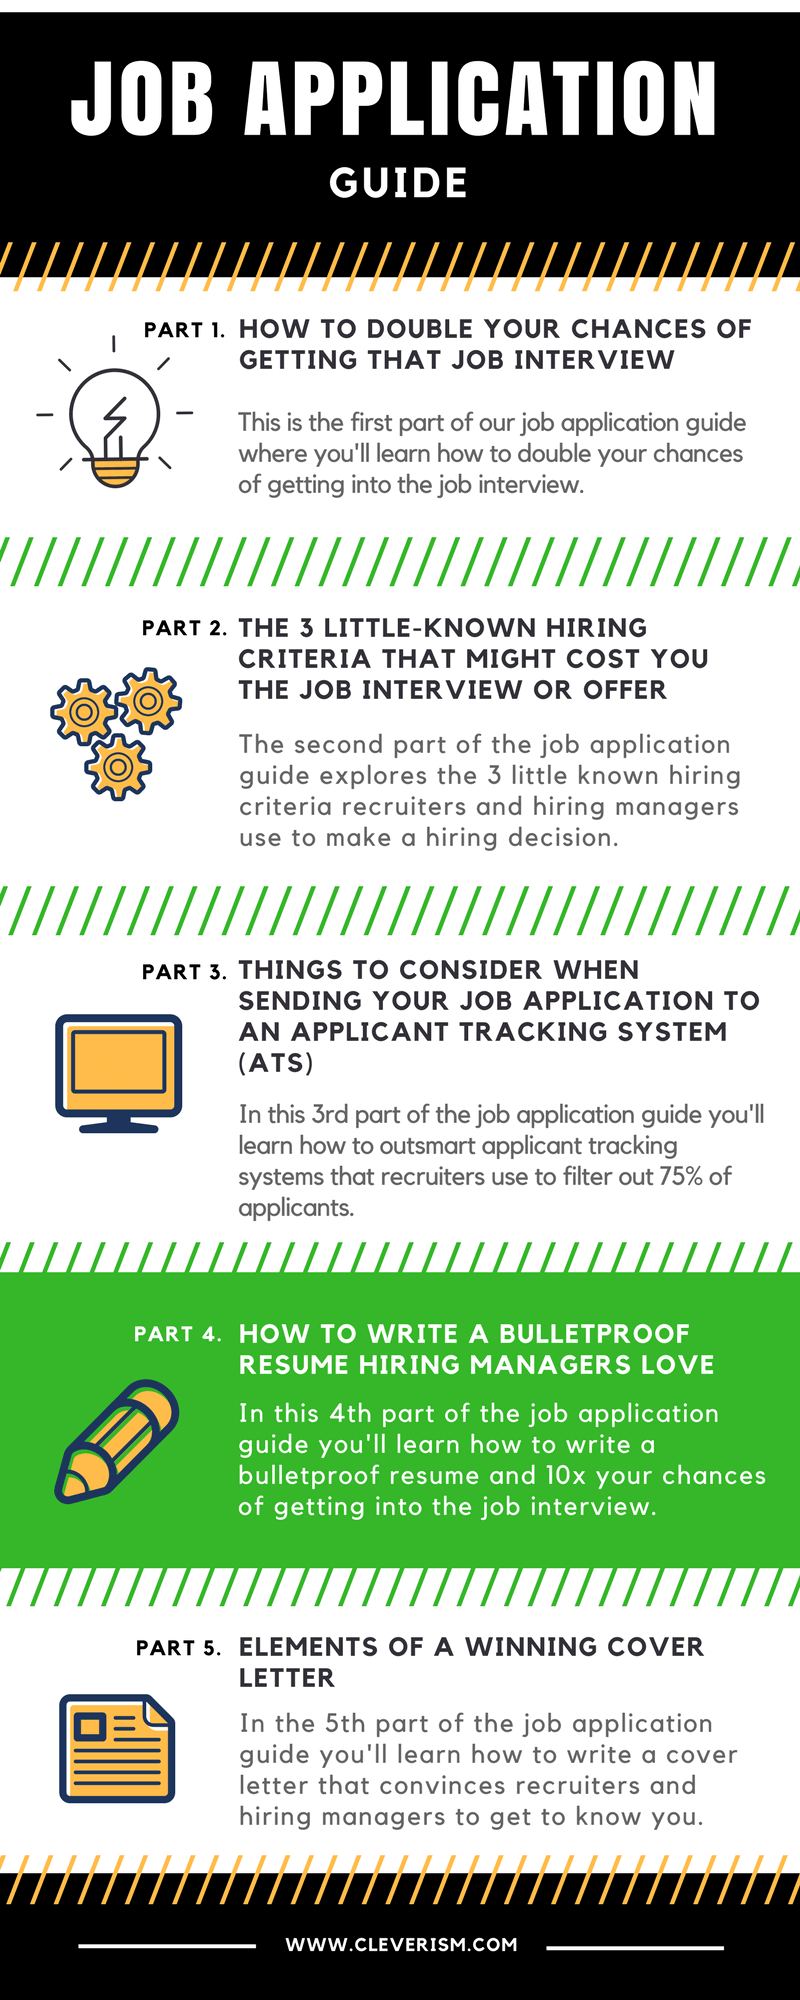 Job Application Guide - How to Write a Bulletproof Resume